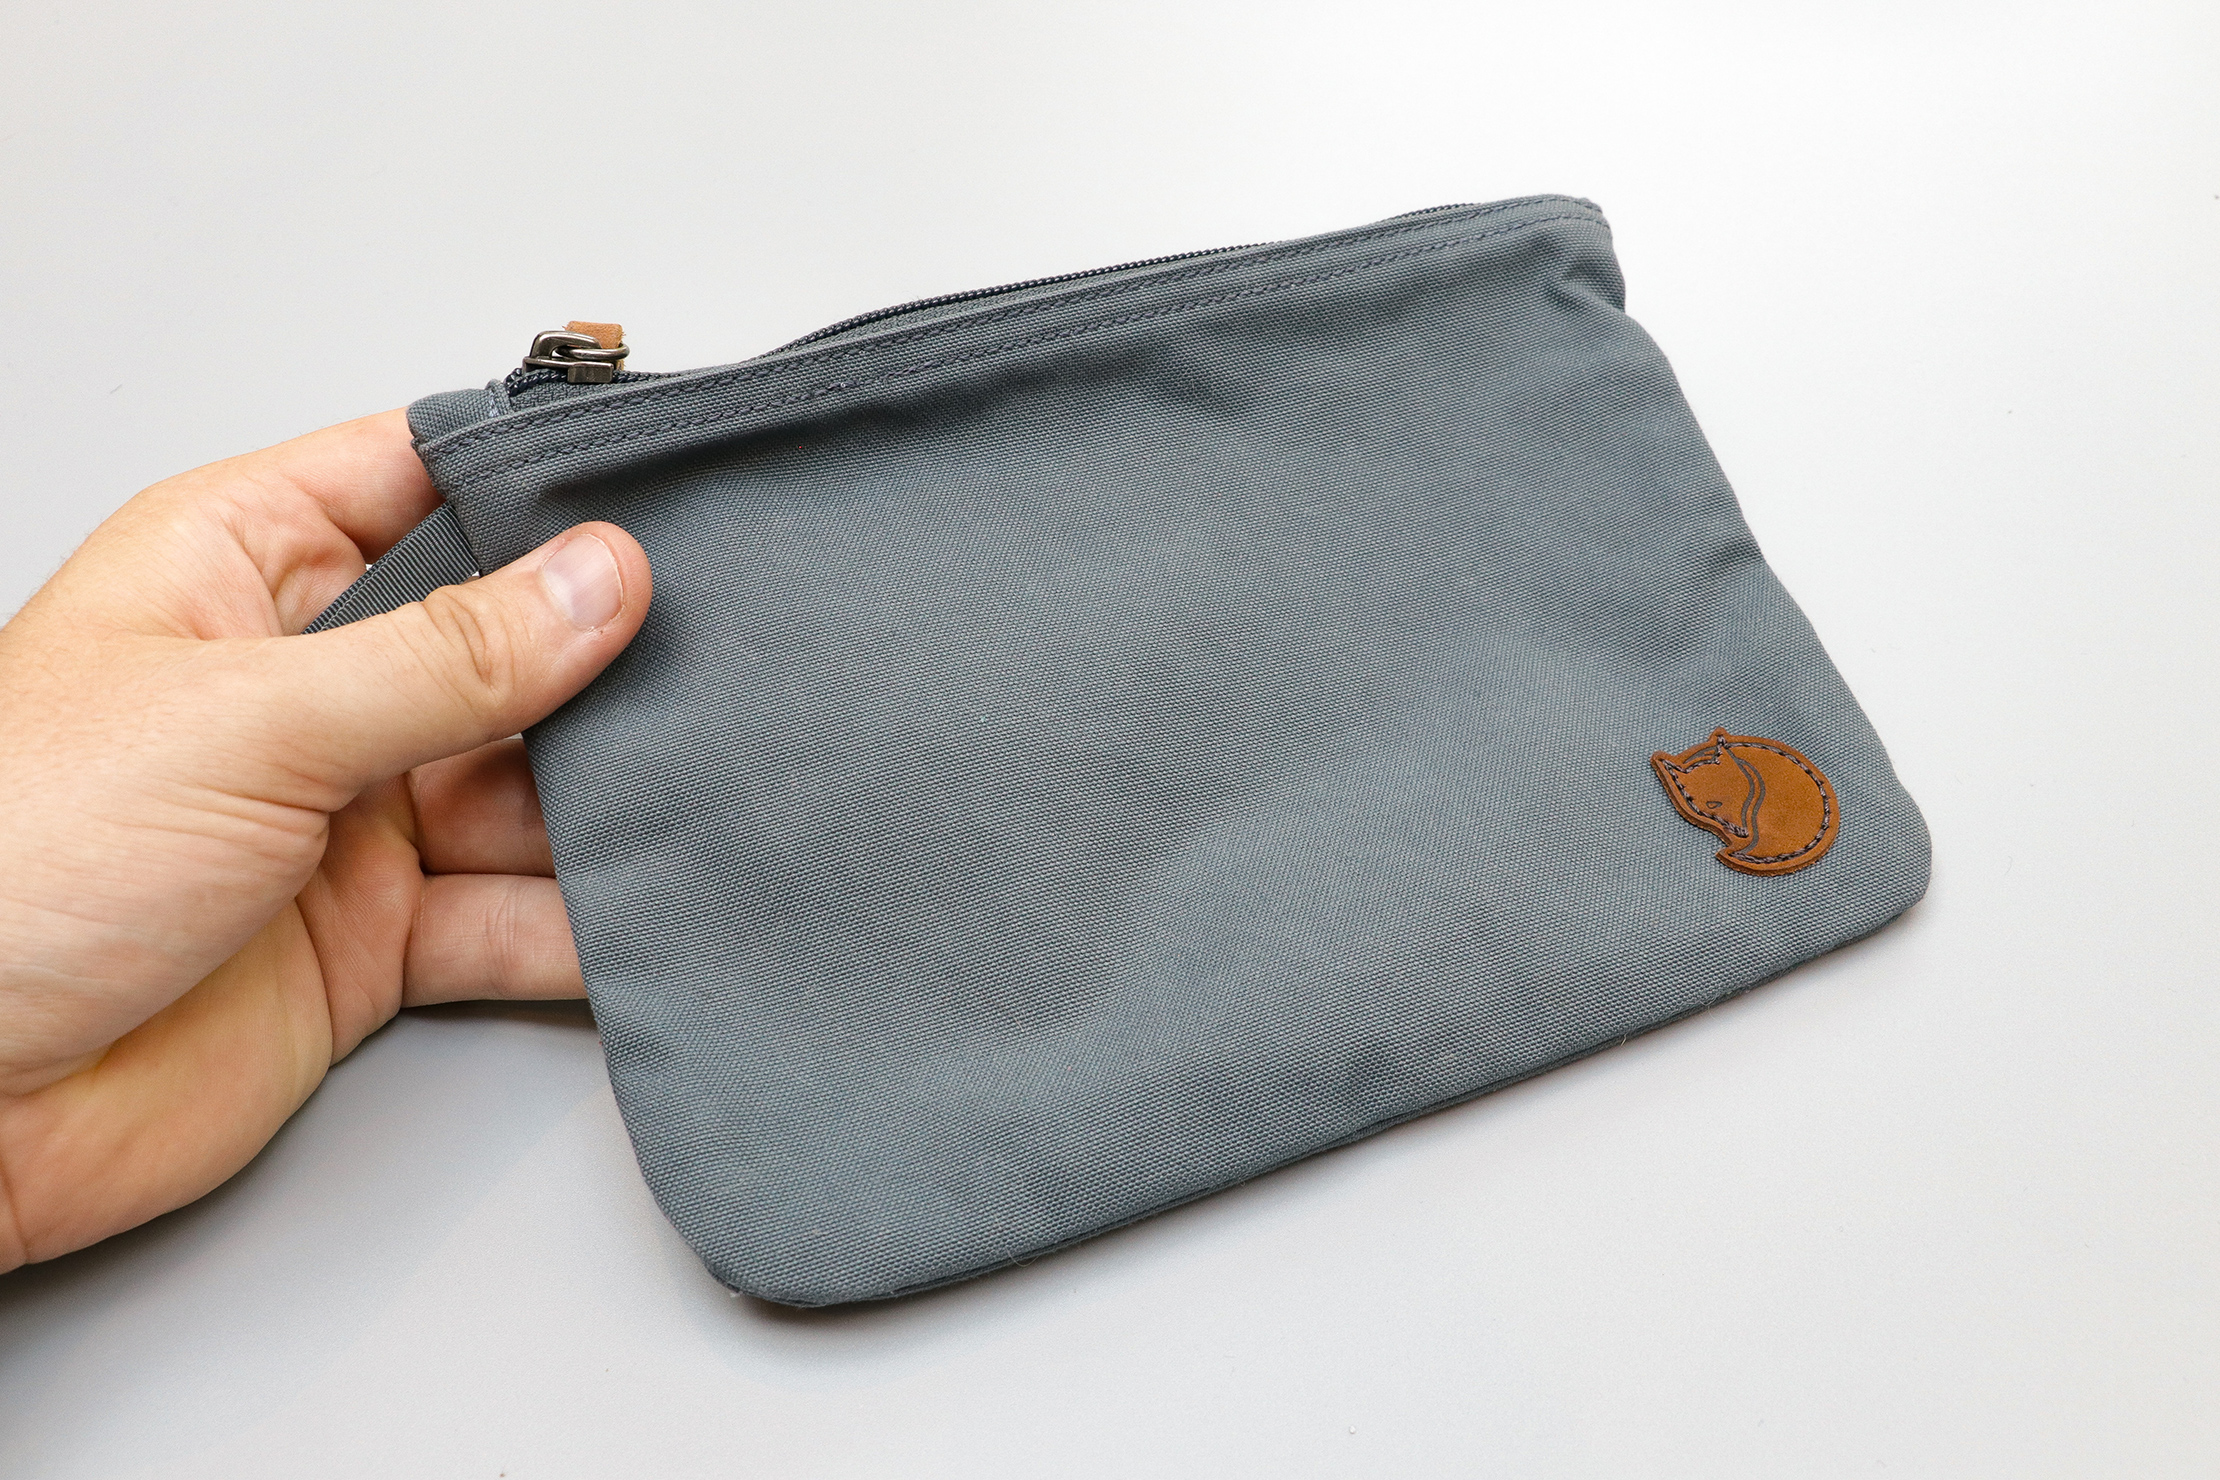 Fjallraven Gear Pocket G1000 Material